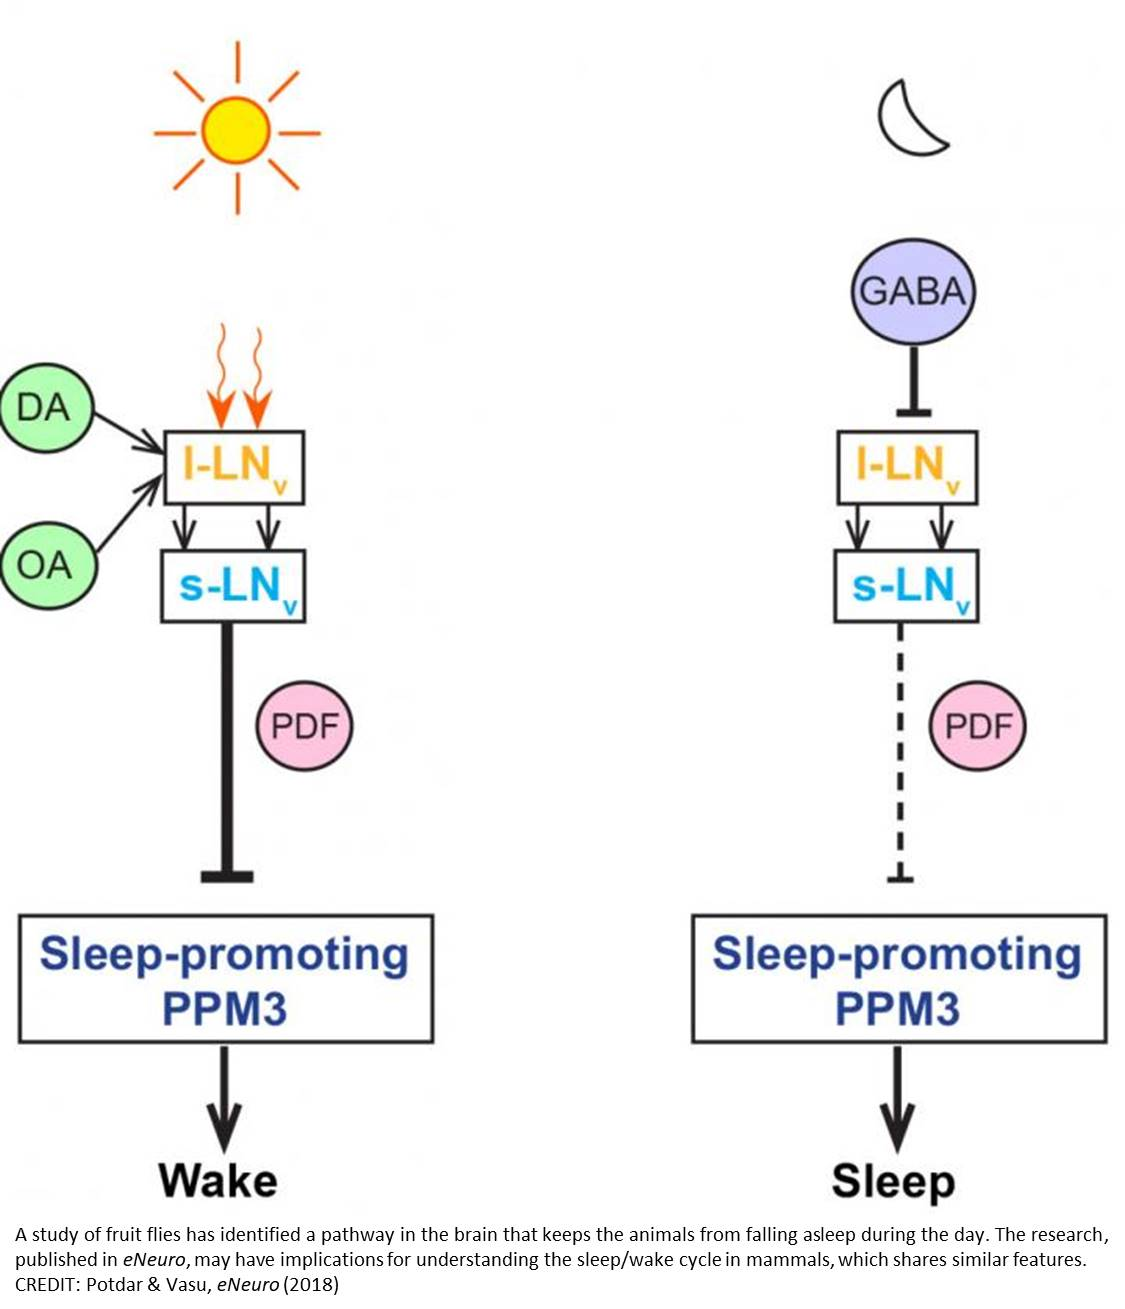 Neural pathway that keeps animals from falling asleep during the day